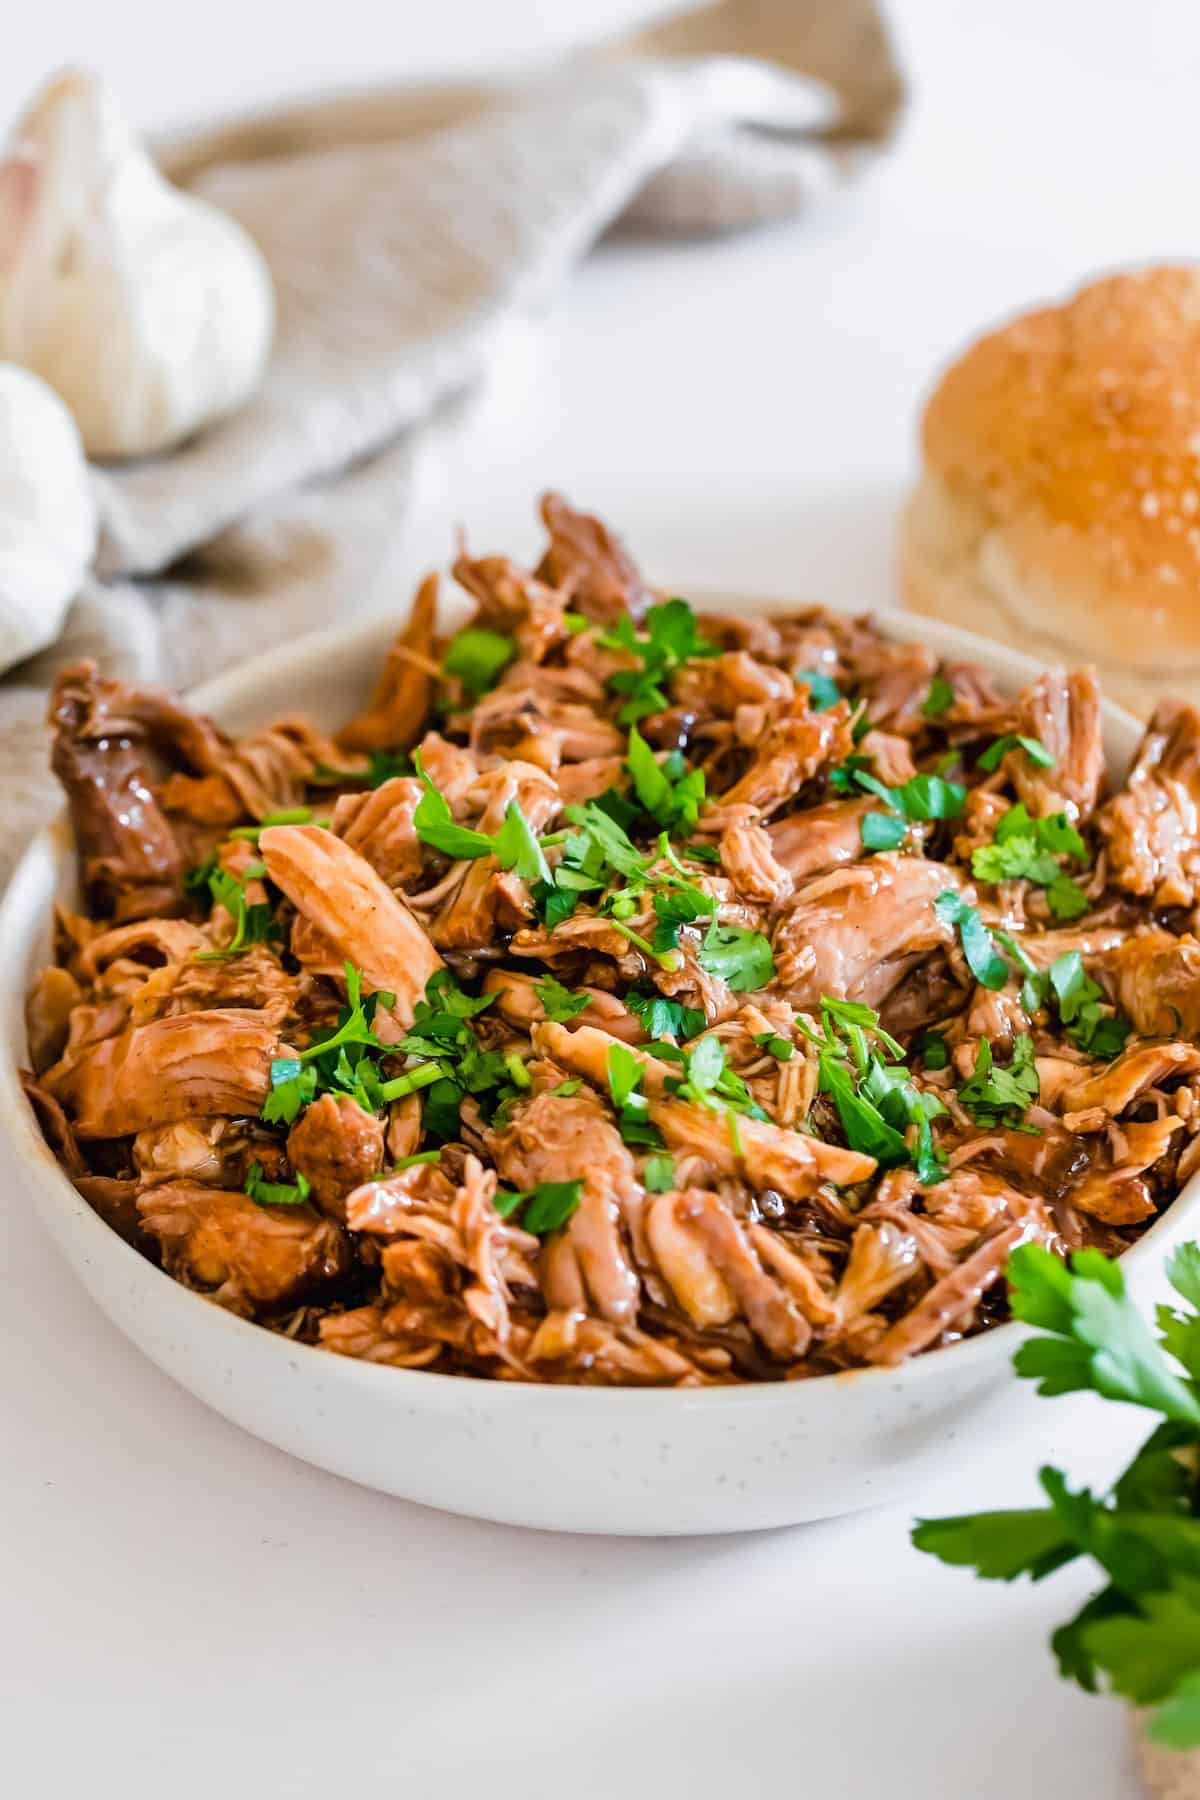 A Bowl of Instant Pot Pulled Pork Garnished with Chopped Parsley